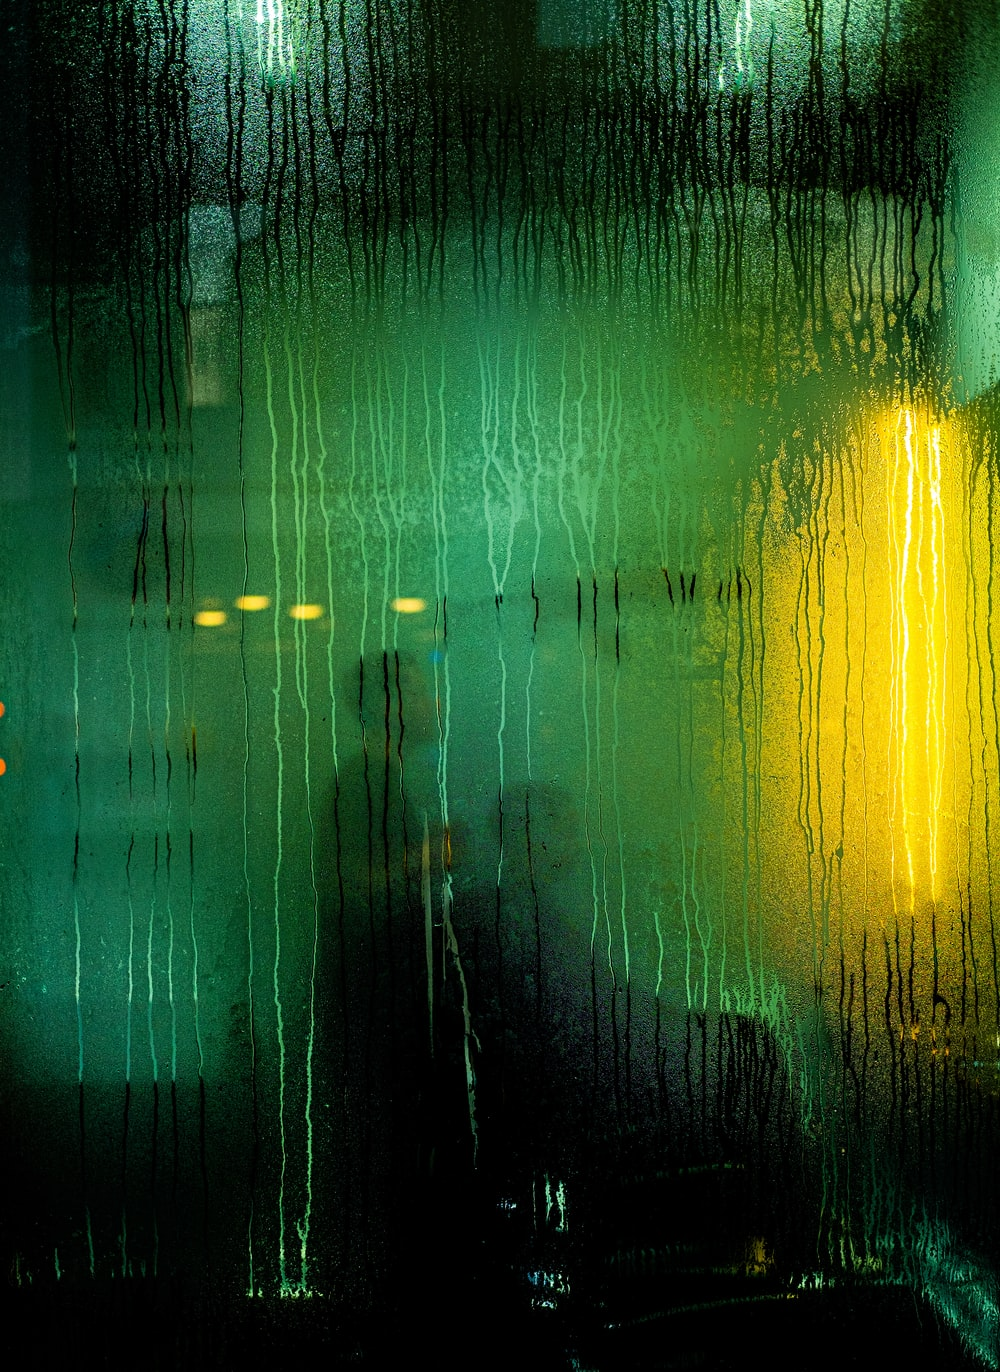 green and yellow lights on a dark room